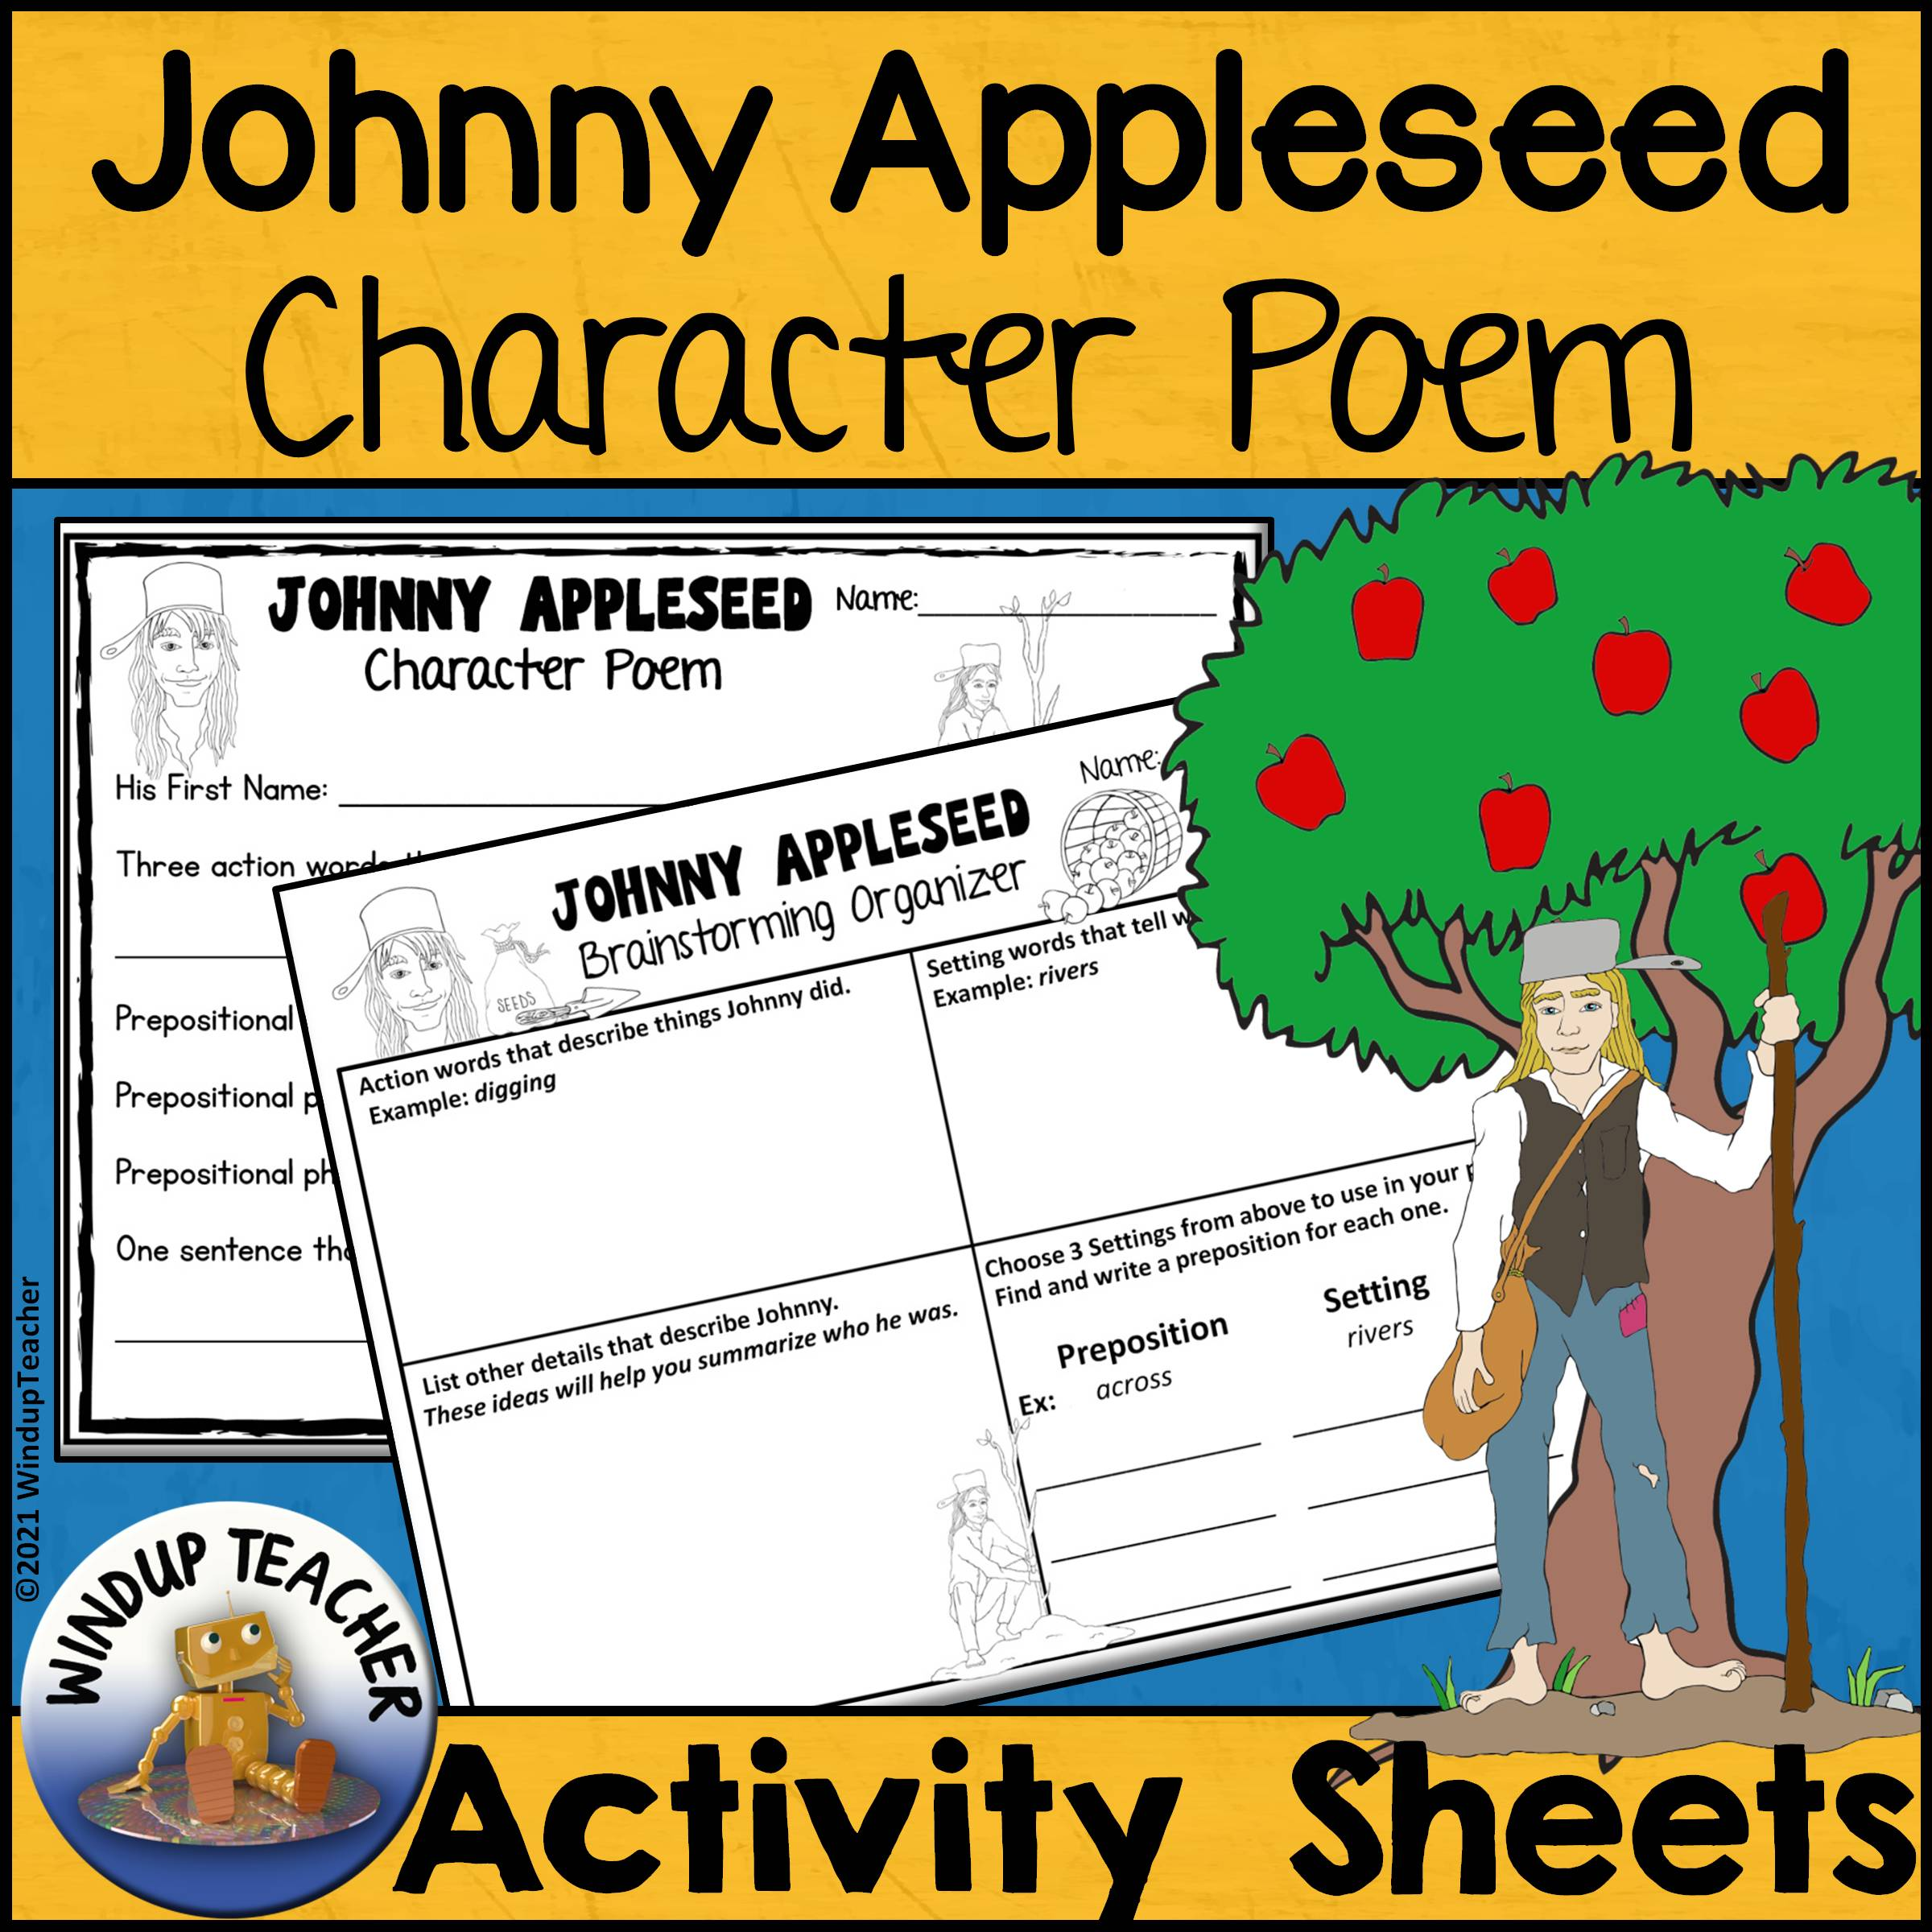 Johnny Appleseed Character Poem Activity